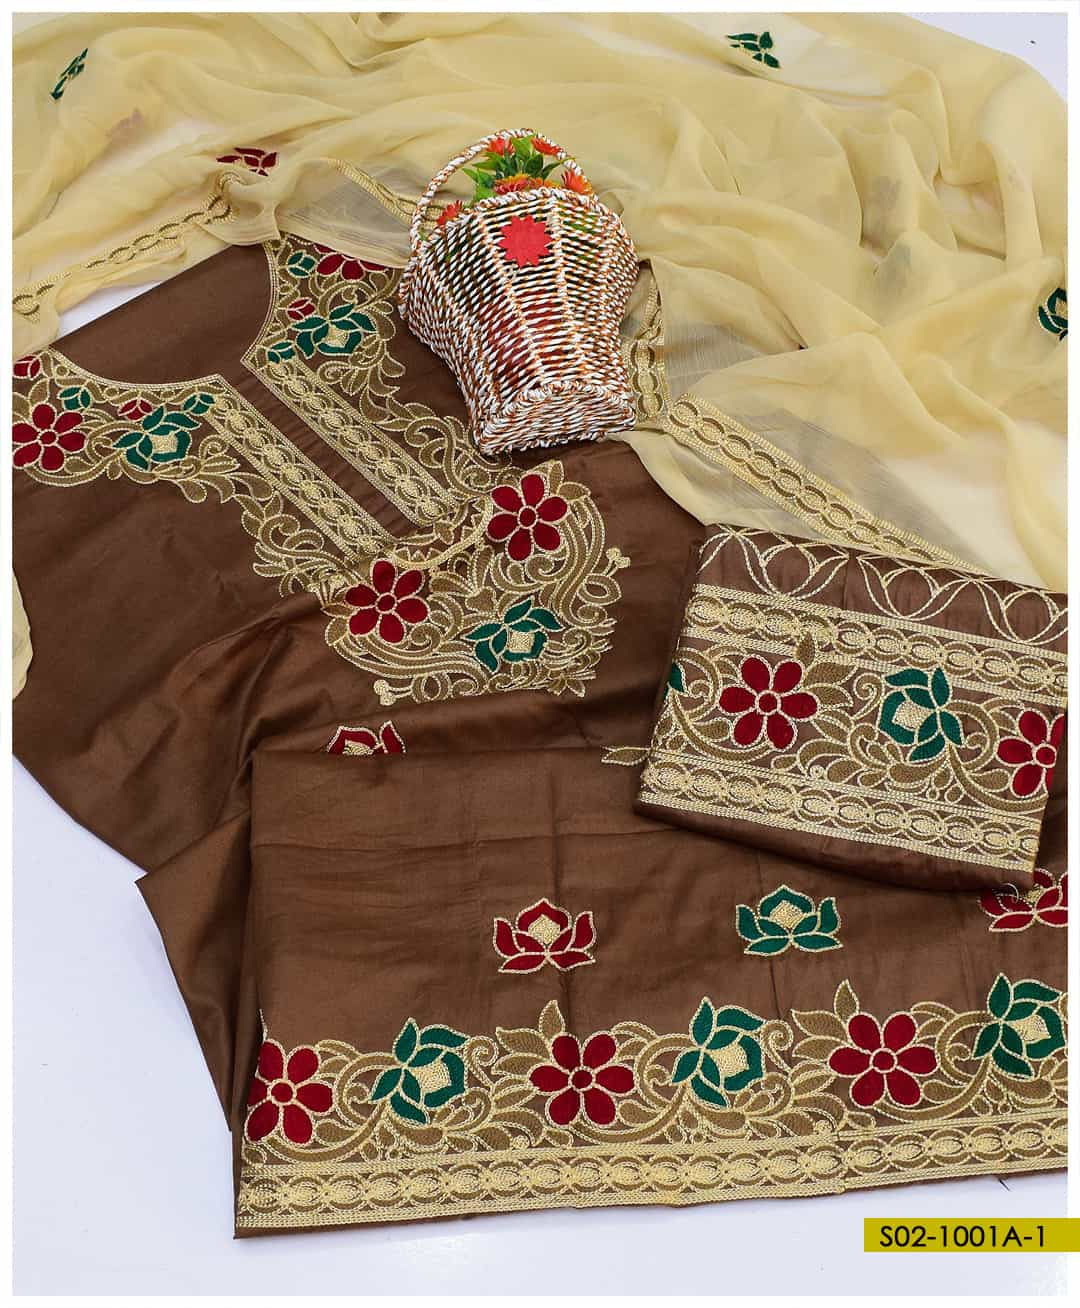 Cotton Lawn 3 PCs Aari Embroidered Summer Suits with Chiffon Dupatta - S02-1001A1